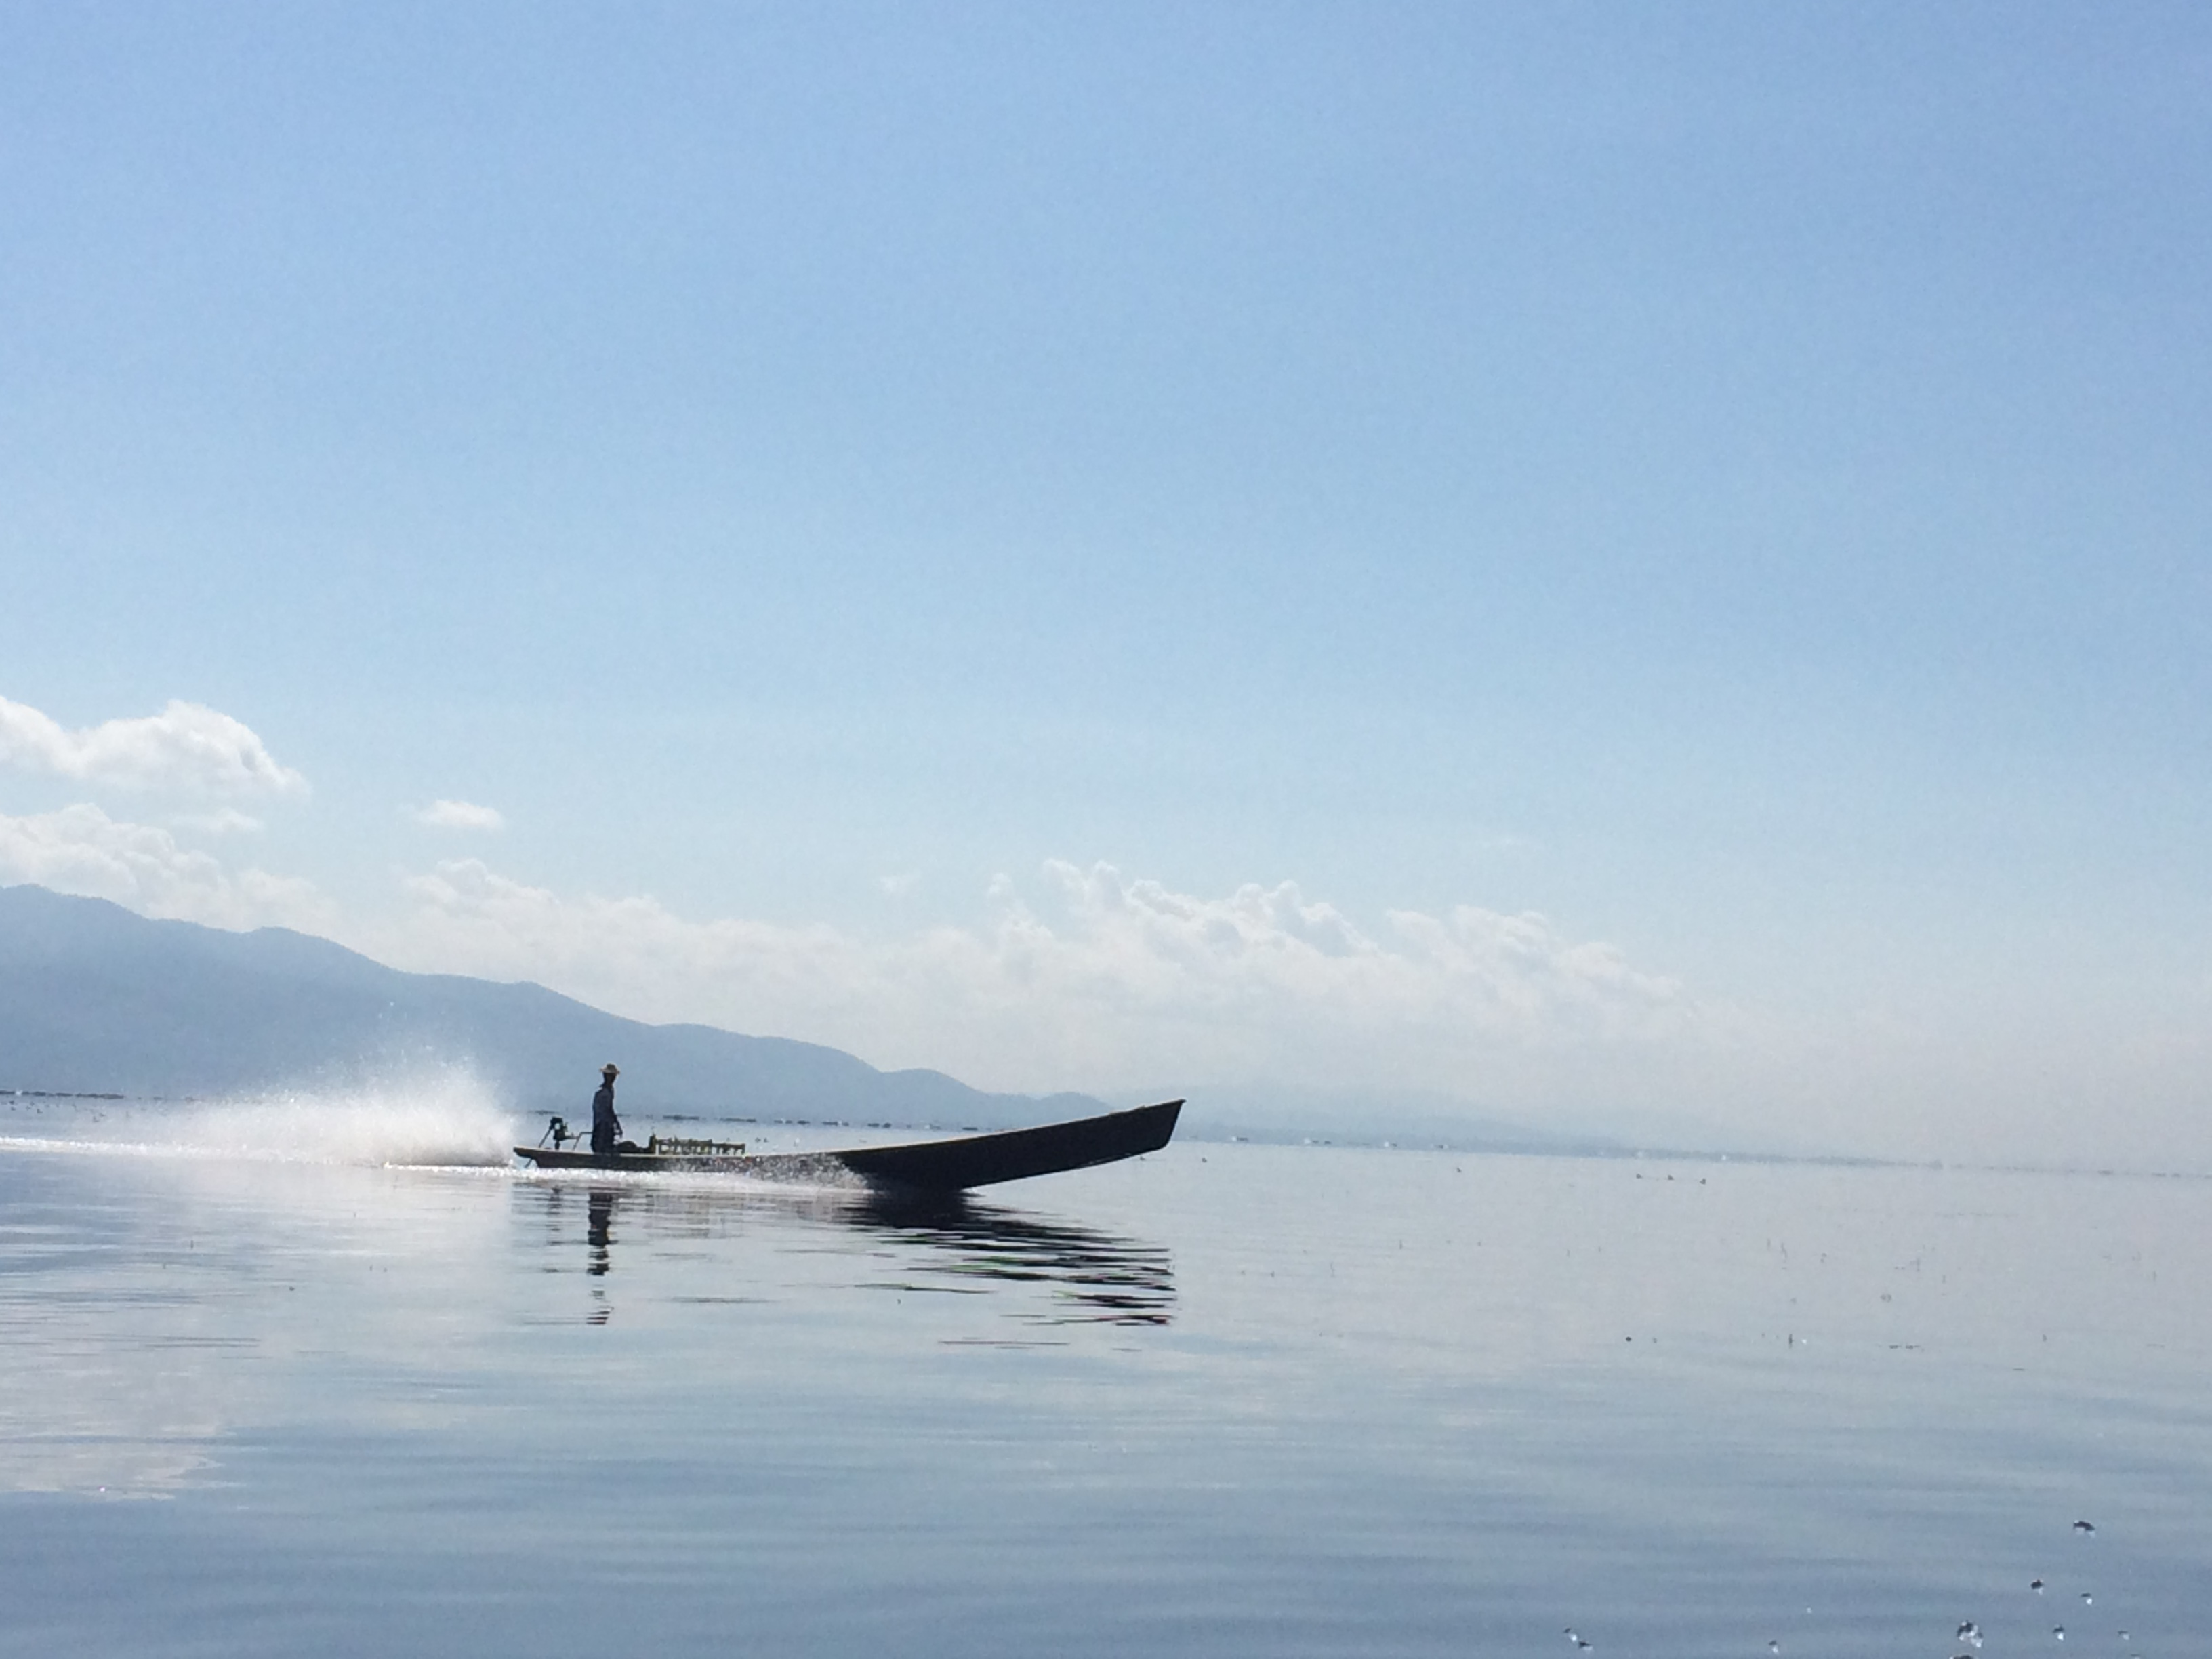 Fishermen, going places